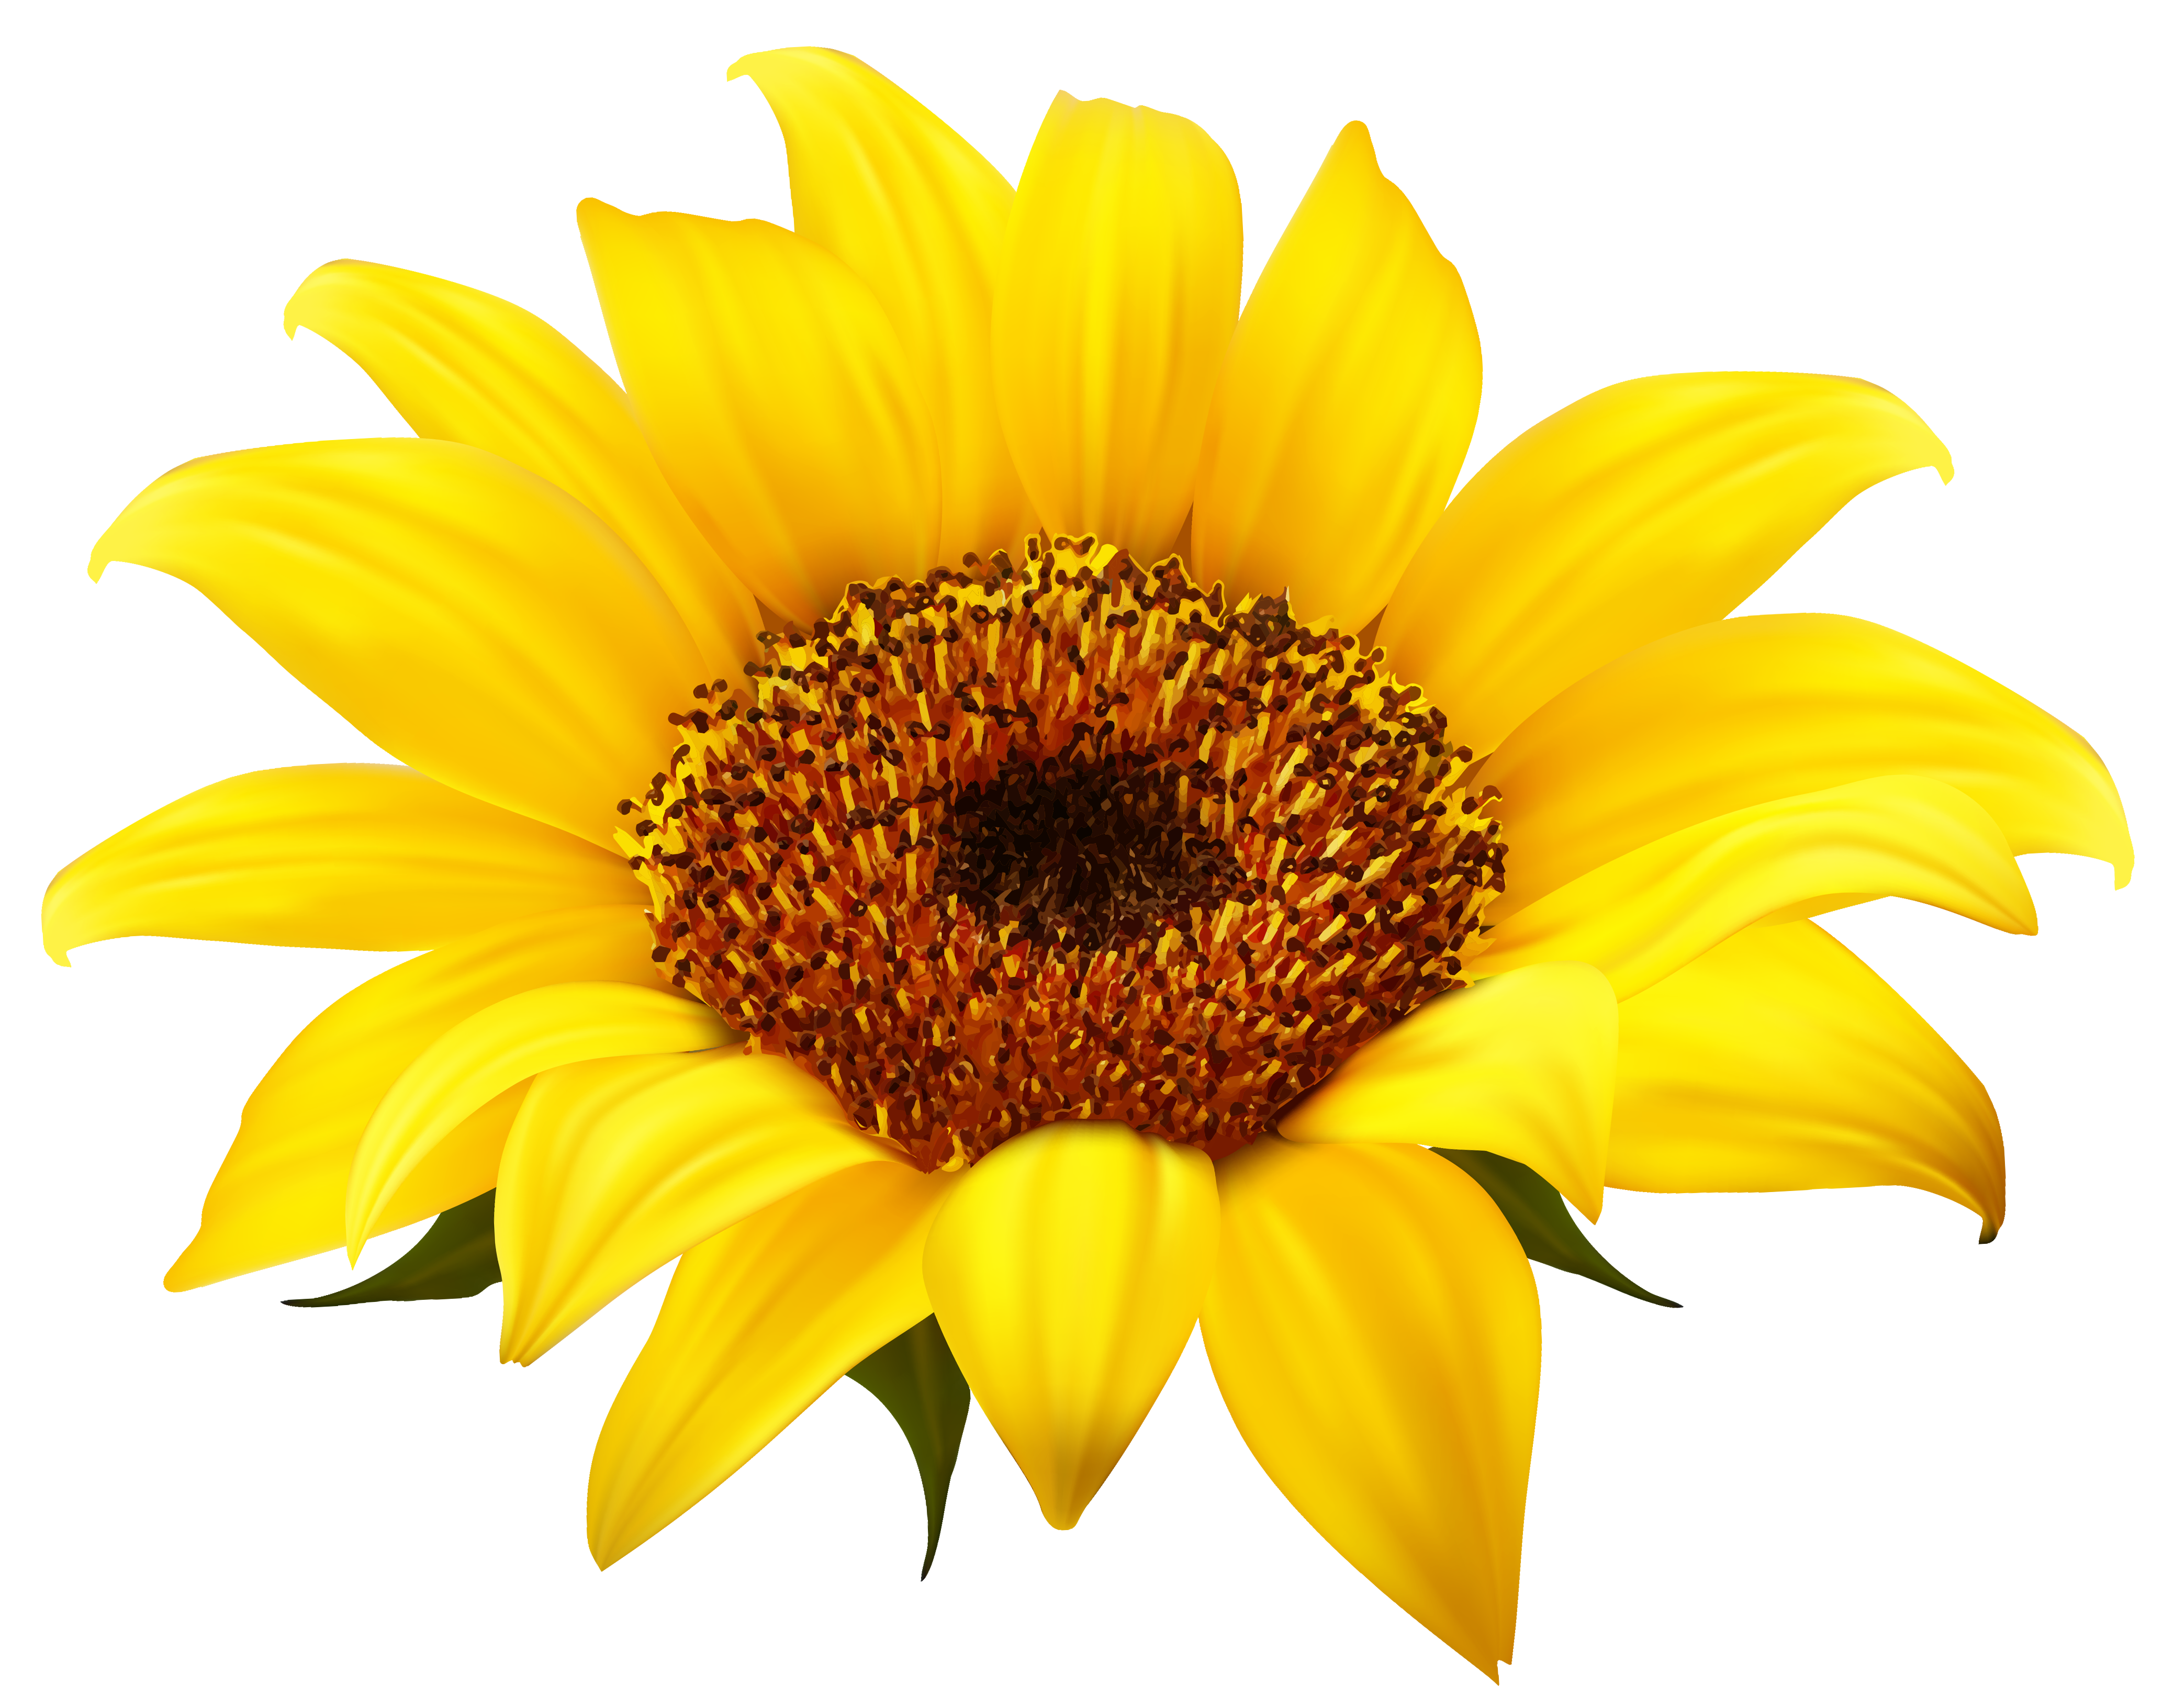 Sunflower Clipart PNG Image.